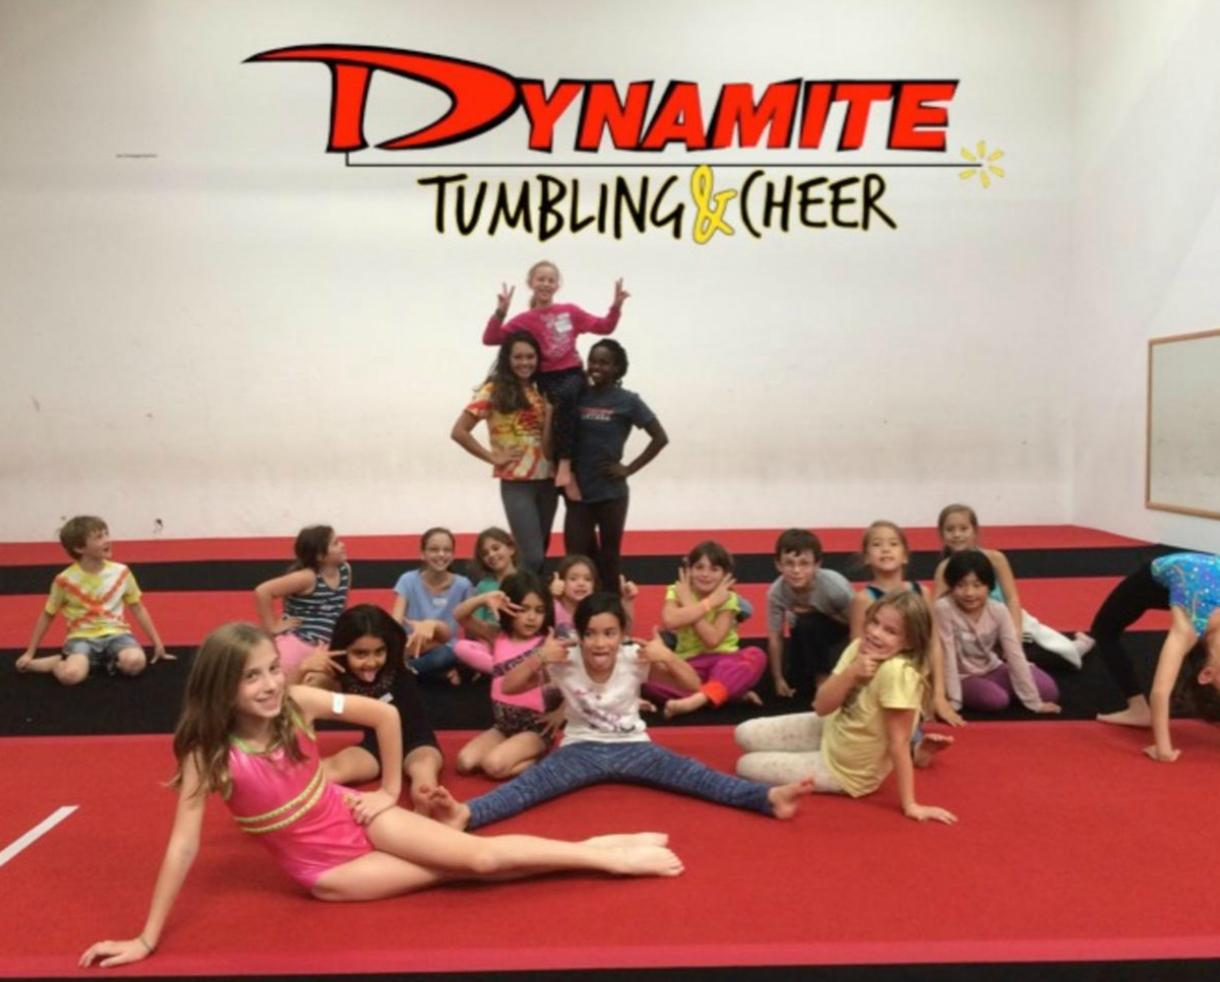 $210 for Birthday Party at Dynamite Tumbling & Cheer in Gaithersburg ($50 Off)